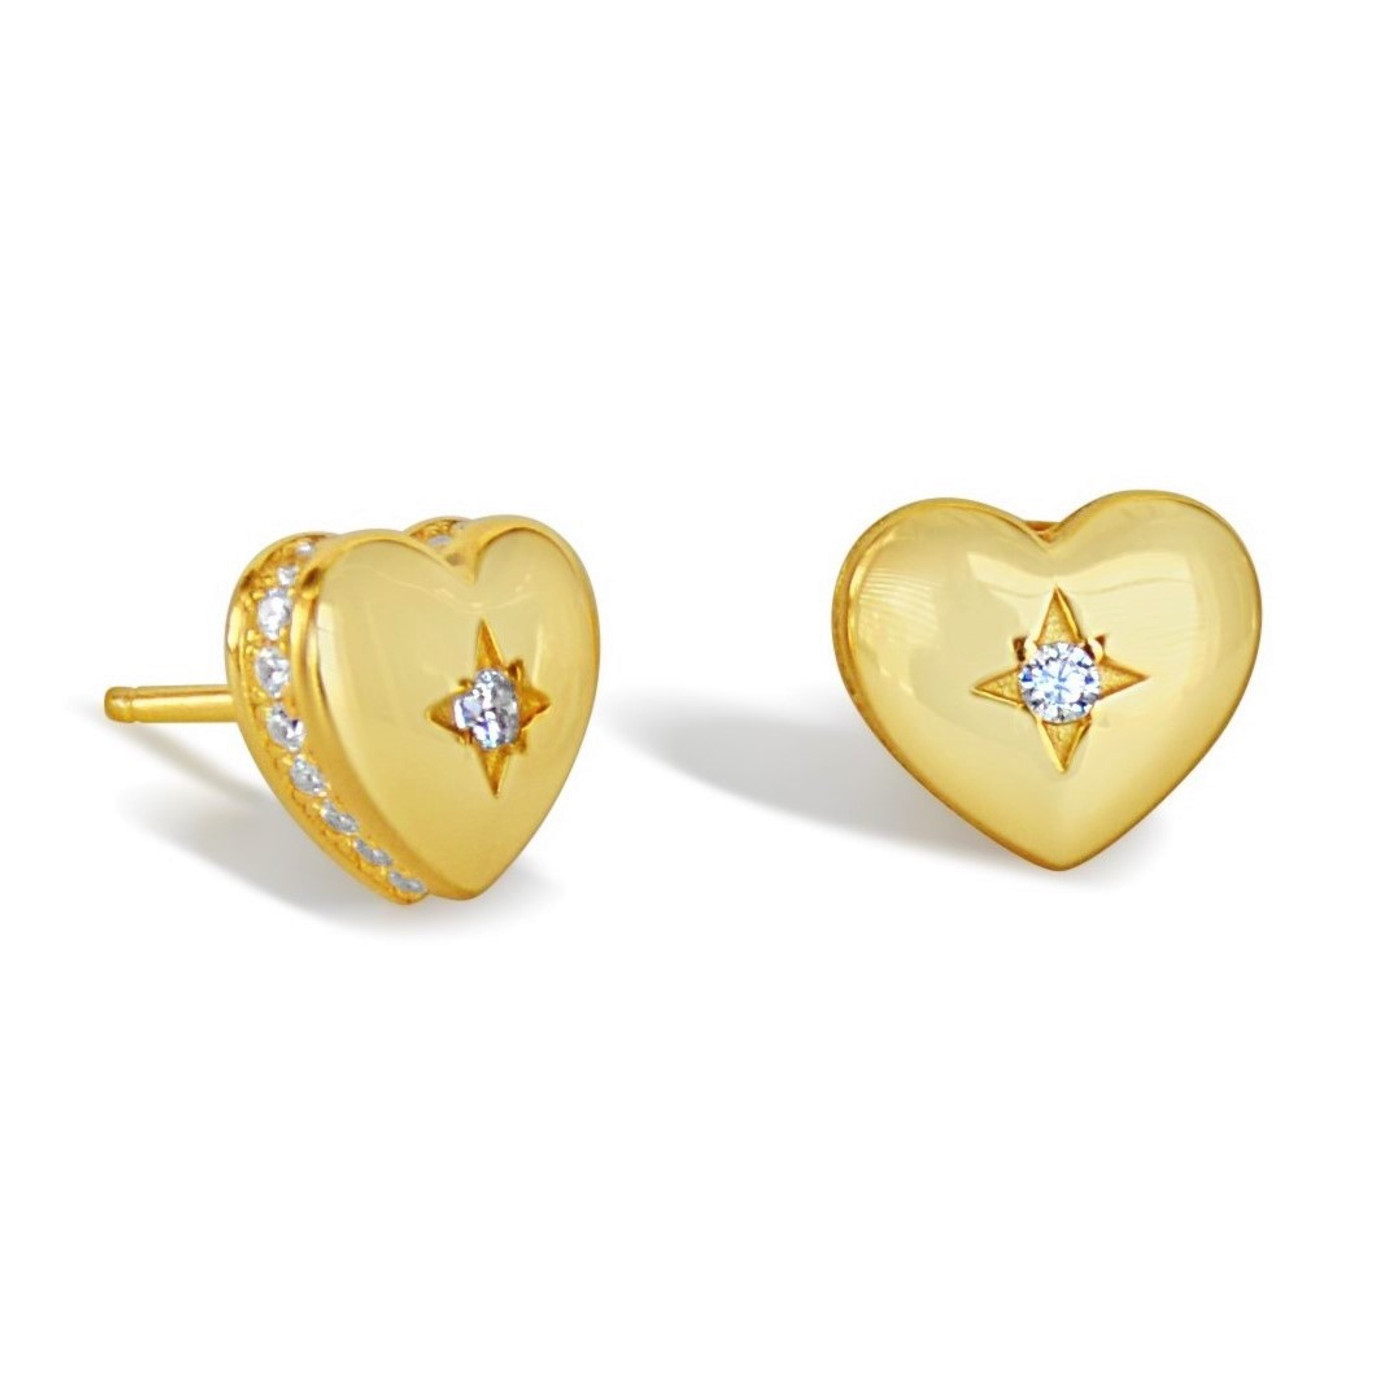 18K Gold over Sterling Silver Heart Starlight Studs Earrings